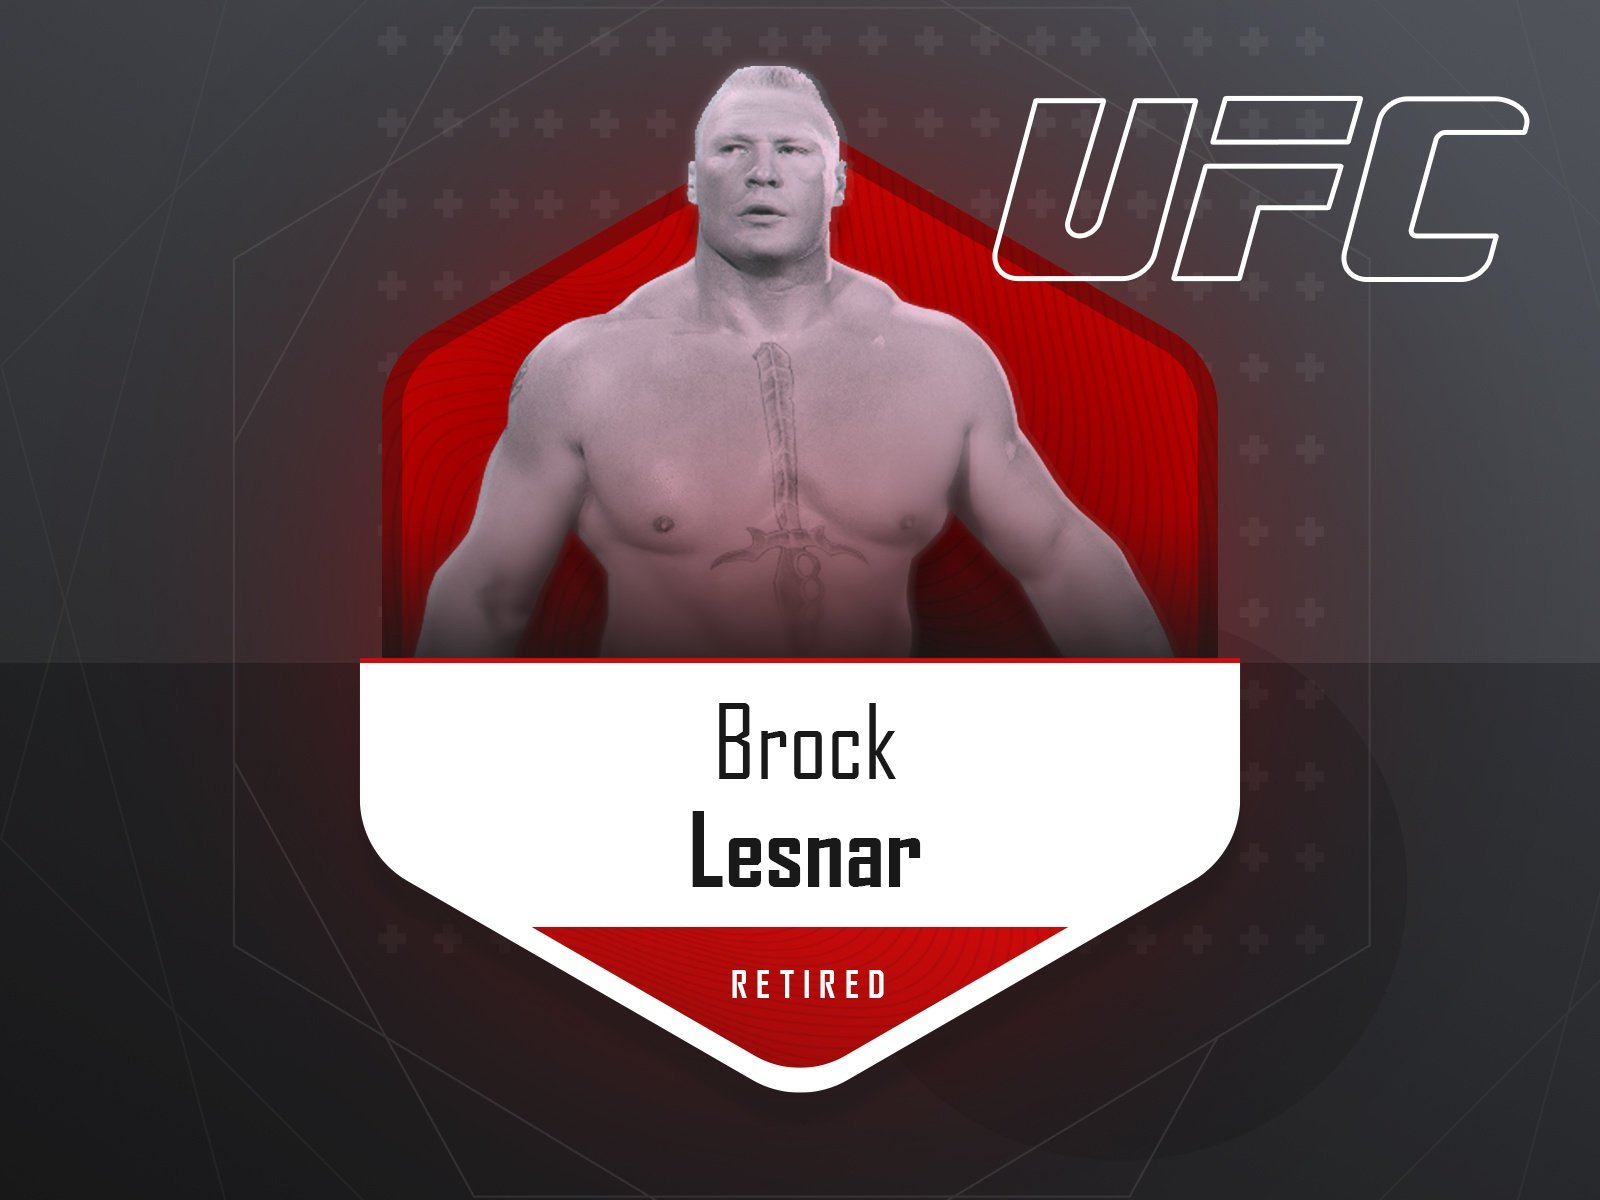 Brock Lesnar - UFC fighter